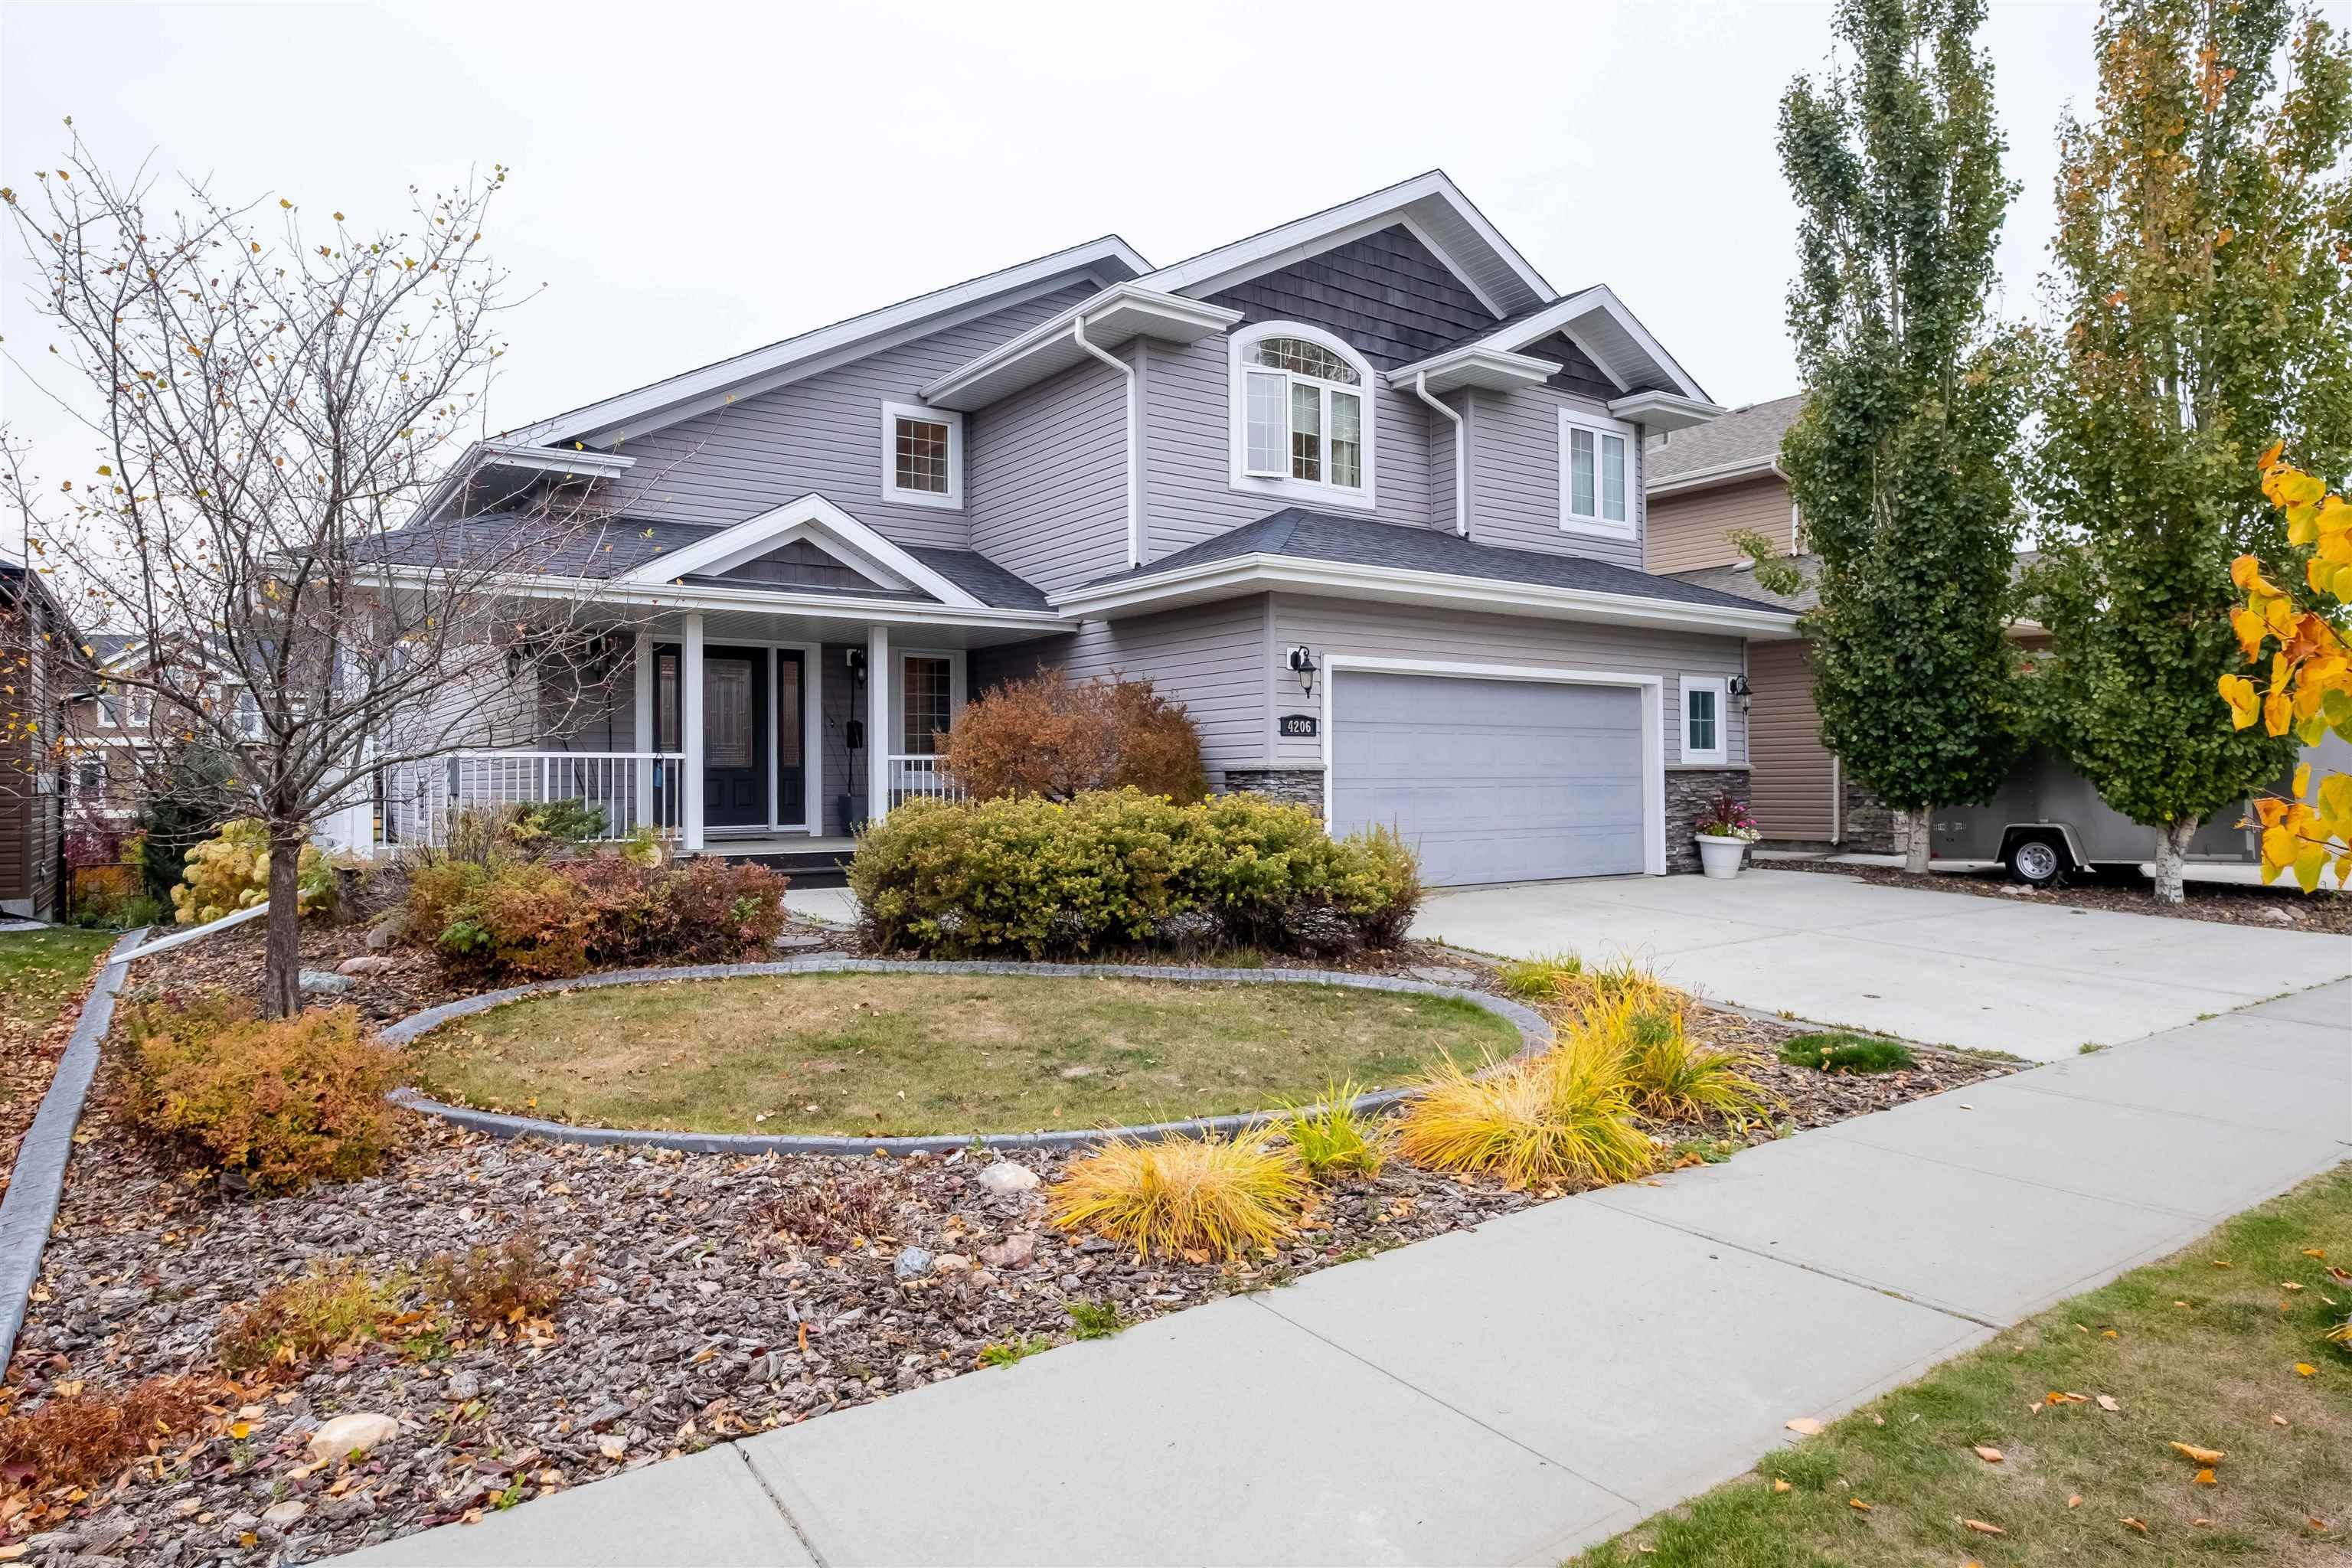 Main Photo: 4206 TRIOMPHE Point: Beaumont House for sale : MLS®# E4266025